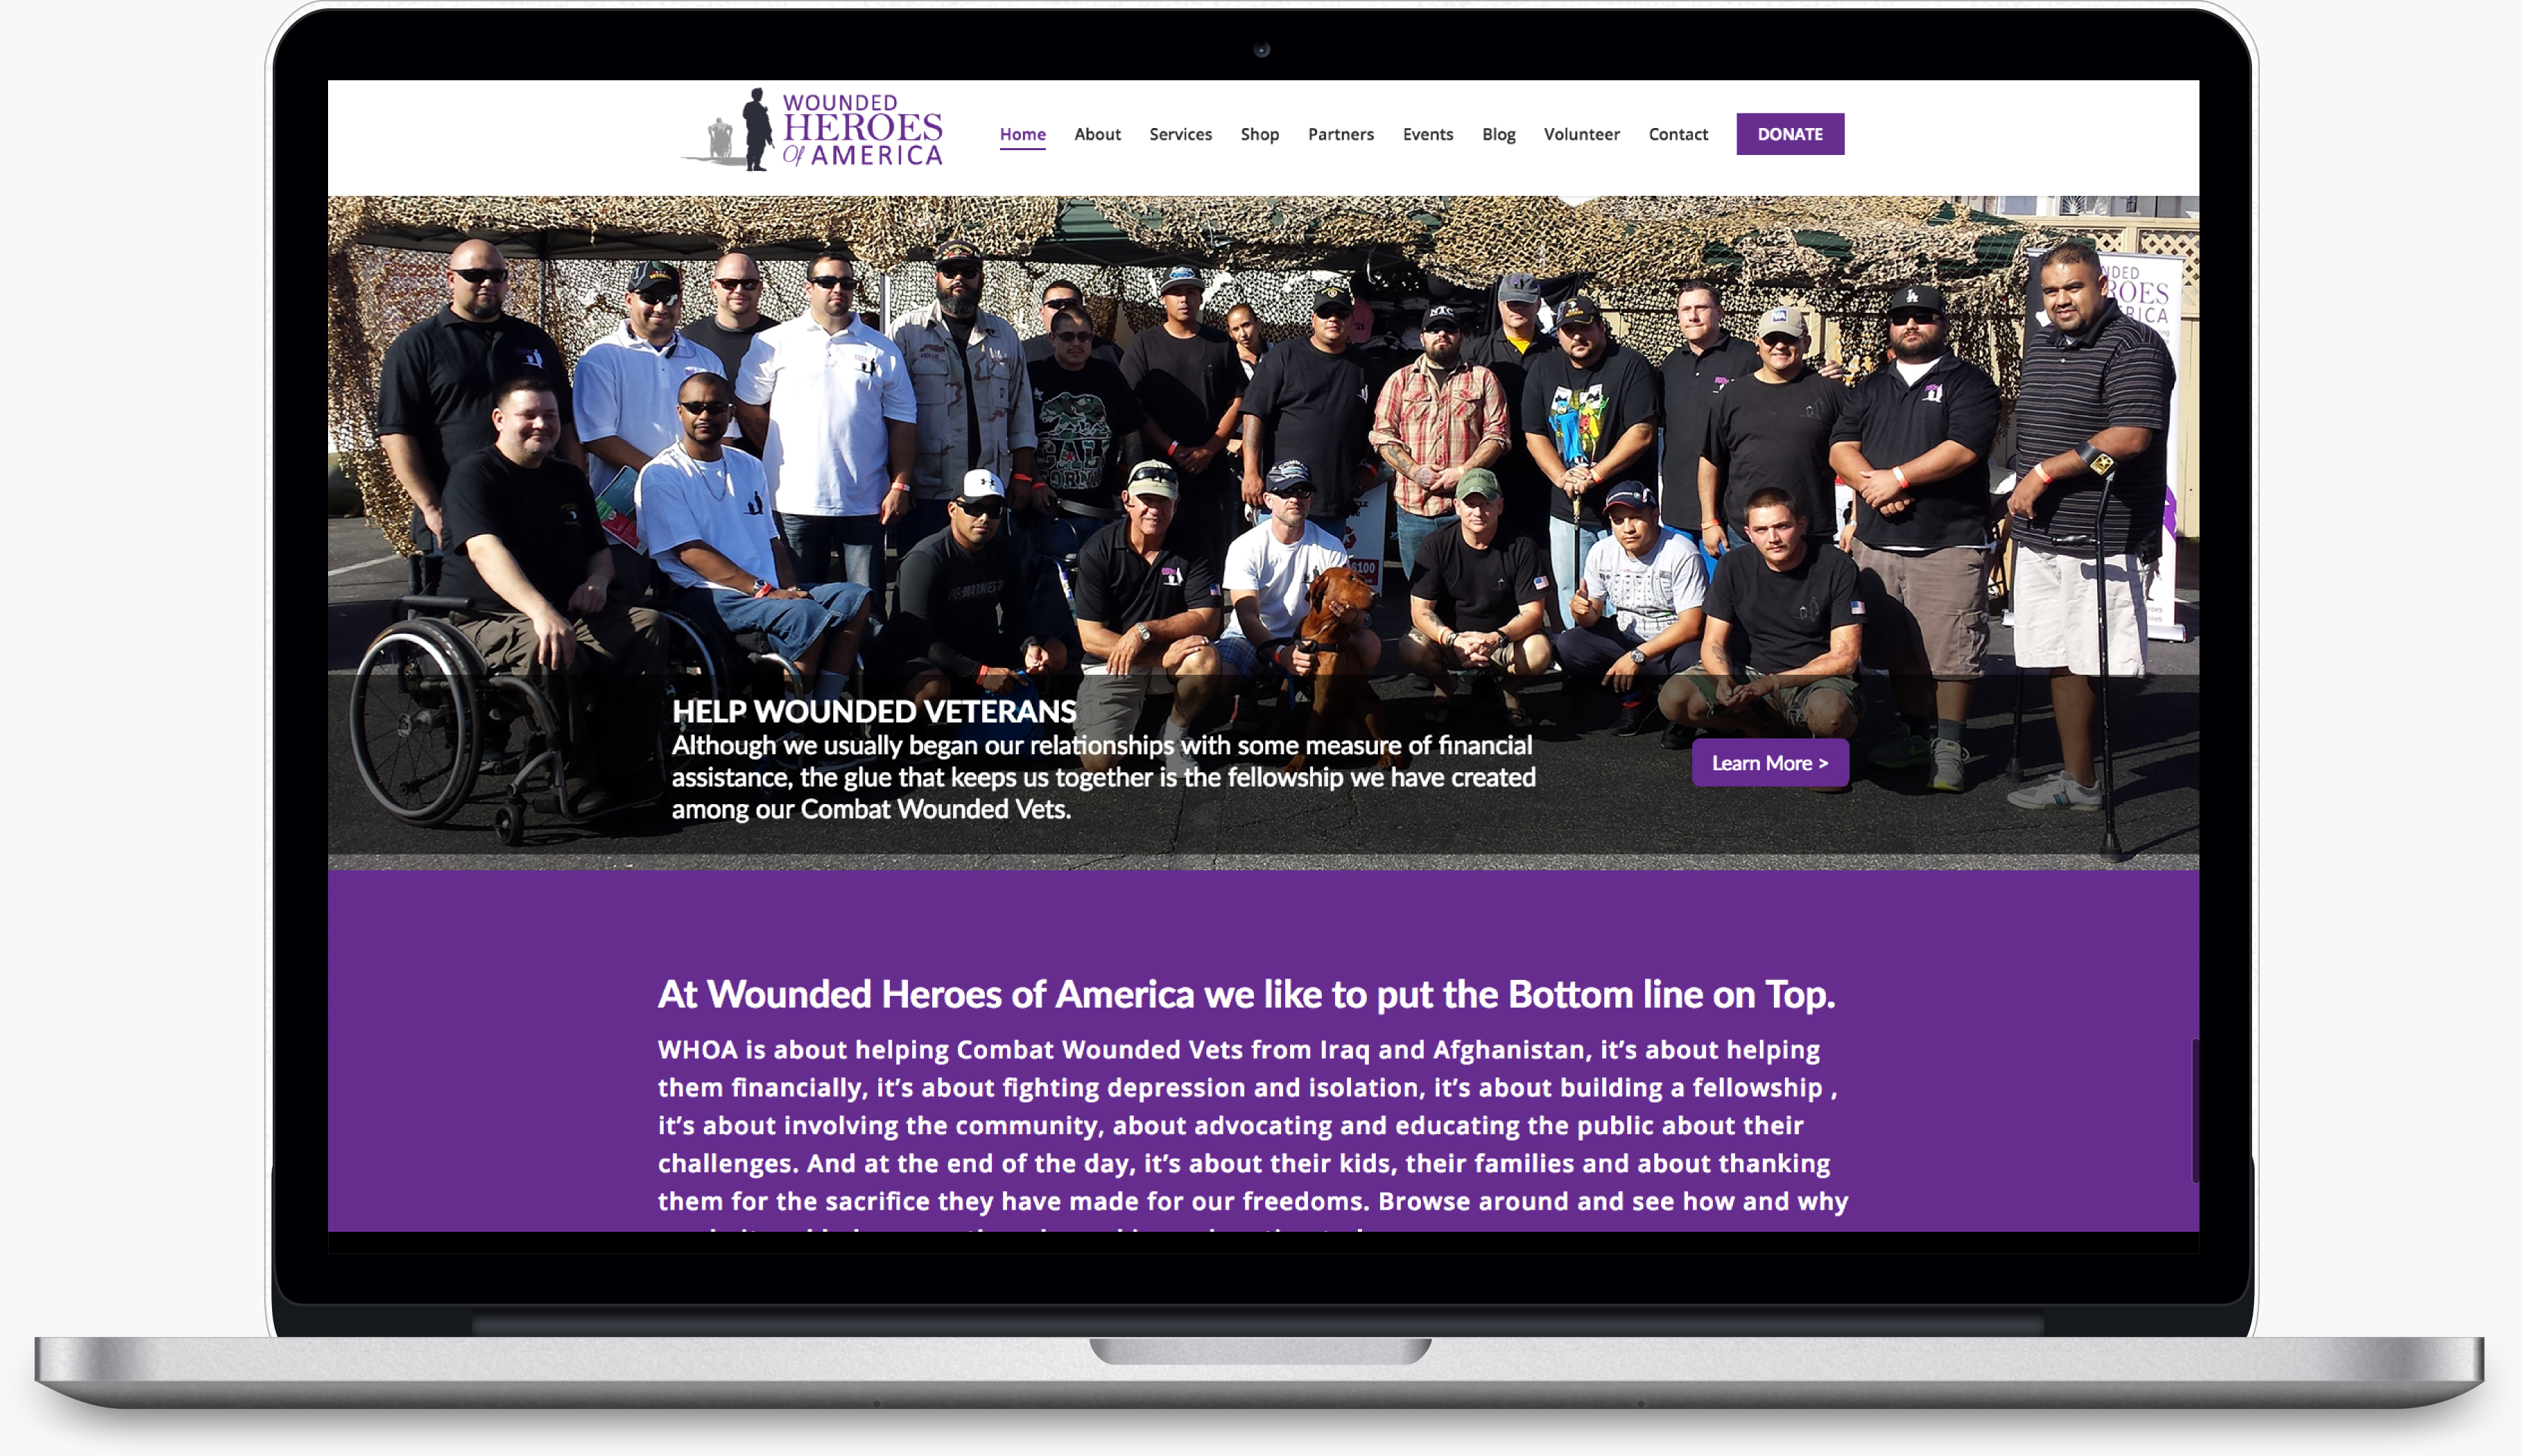 Wounded Heroes of America Website Redesign: An Inspiring Project For An Inspiring Cause